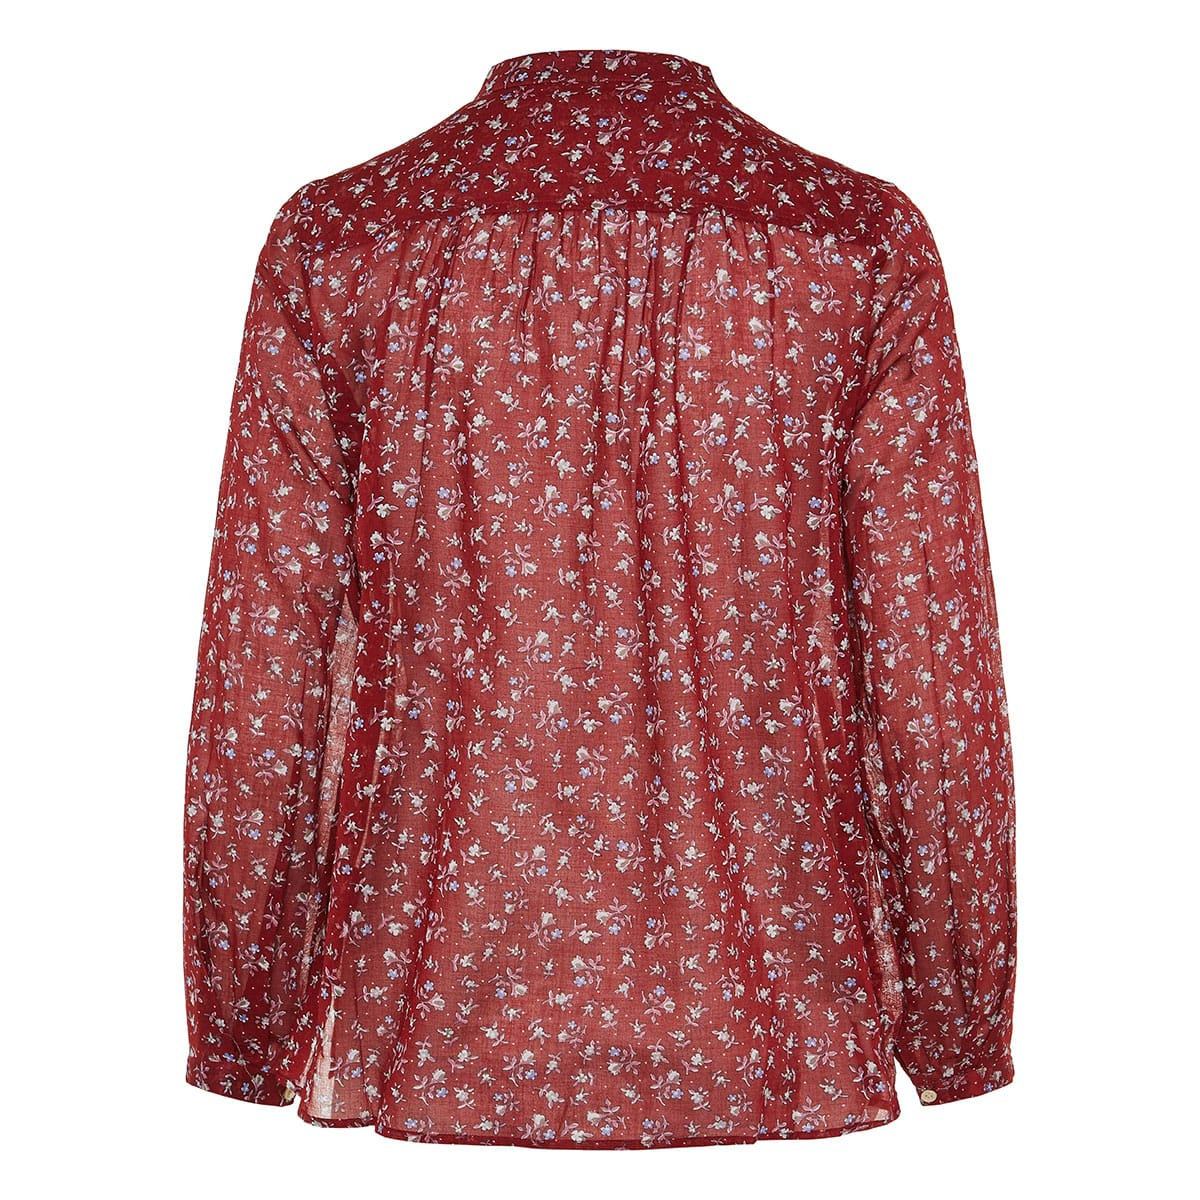 Maria floral blouse